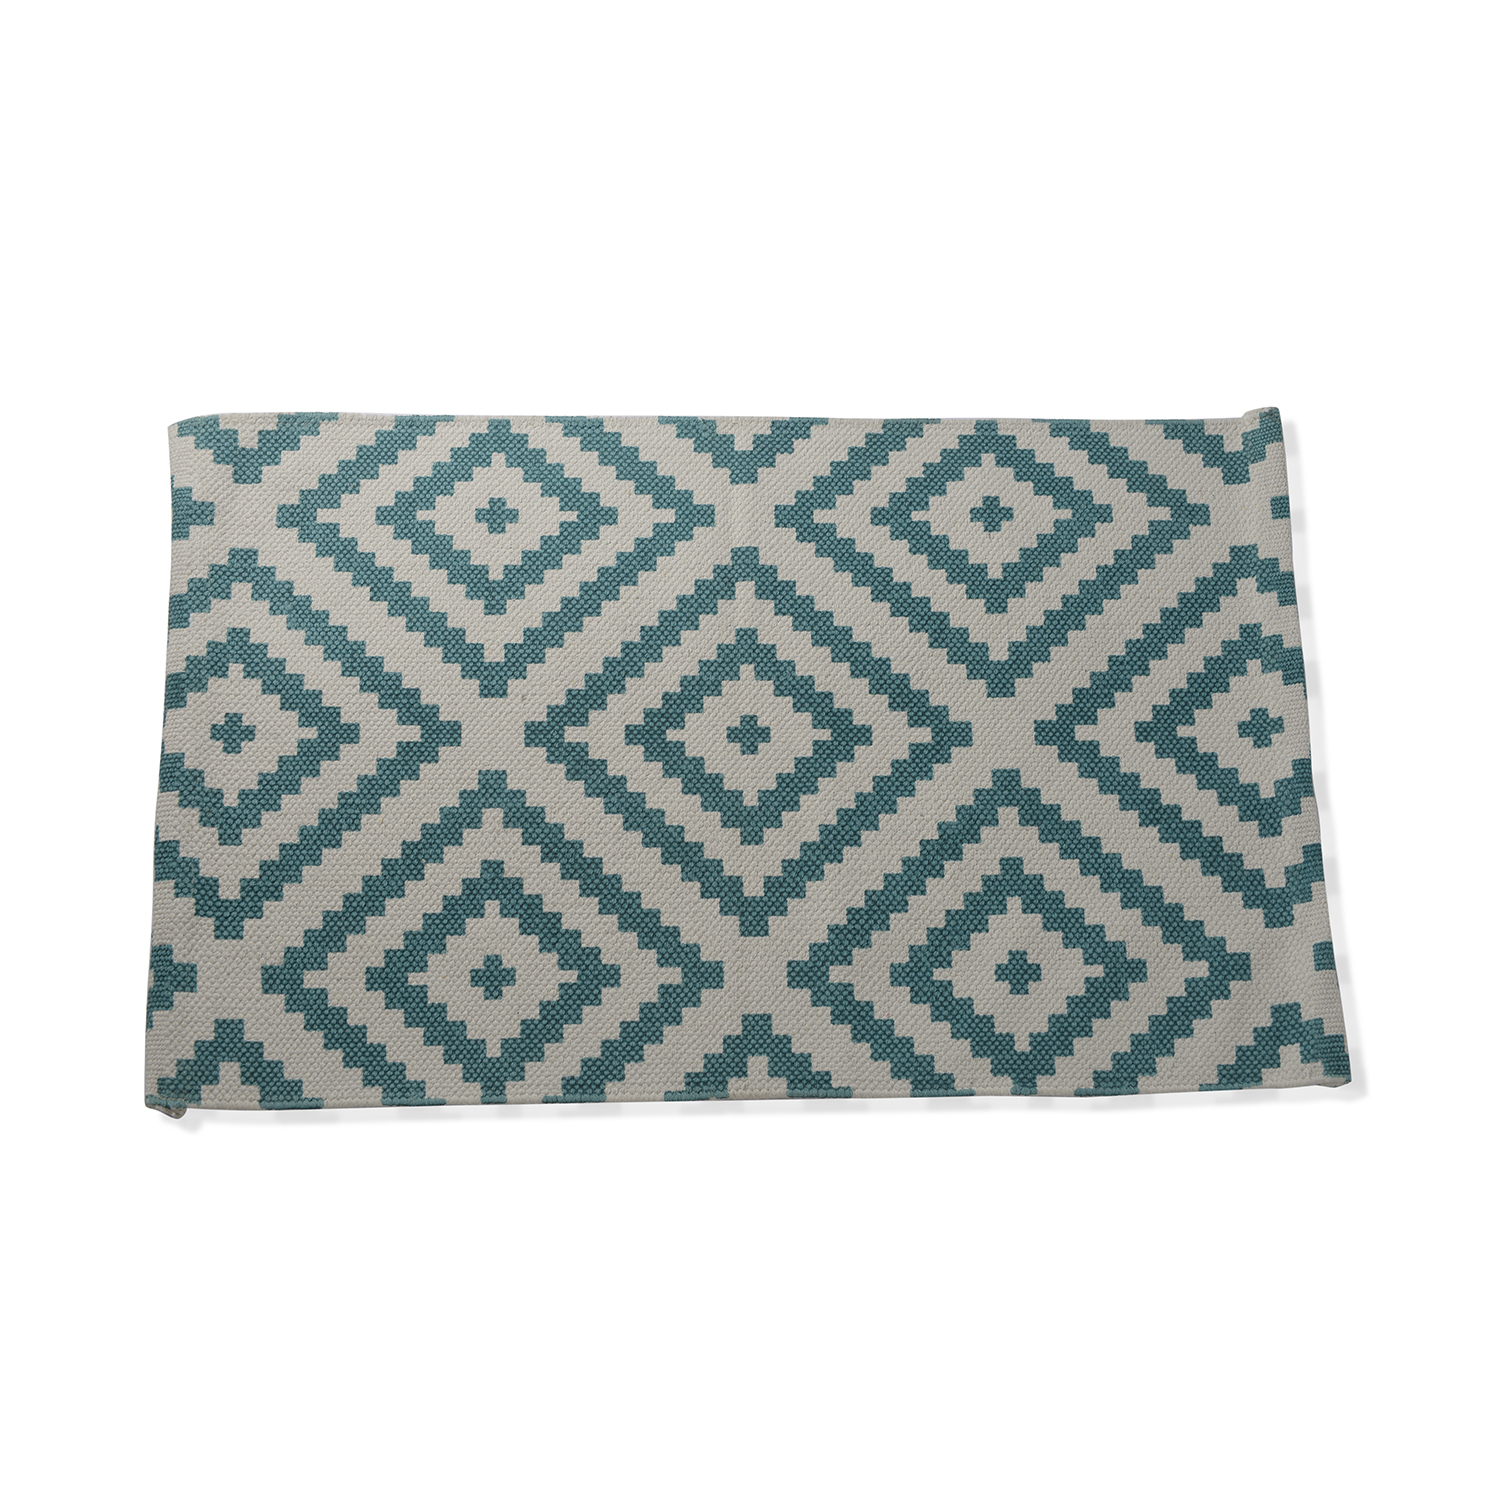 Turquoise and White Cotton Rug